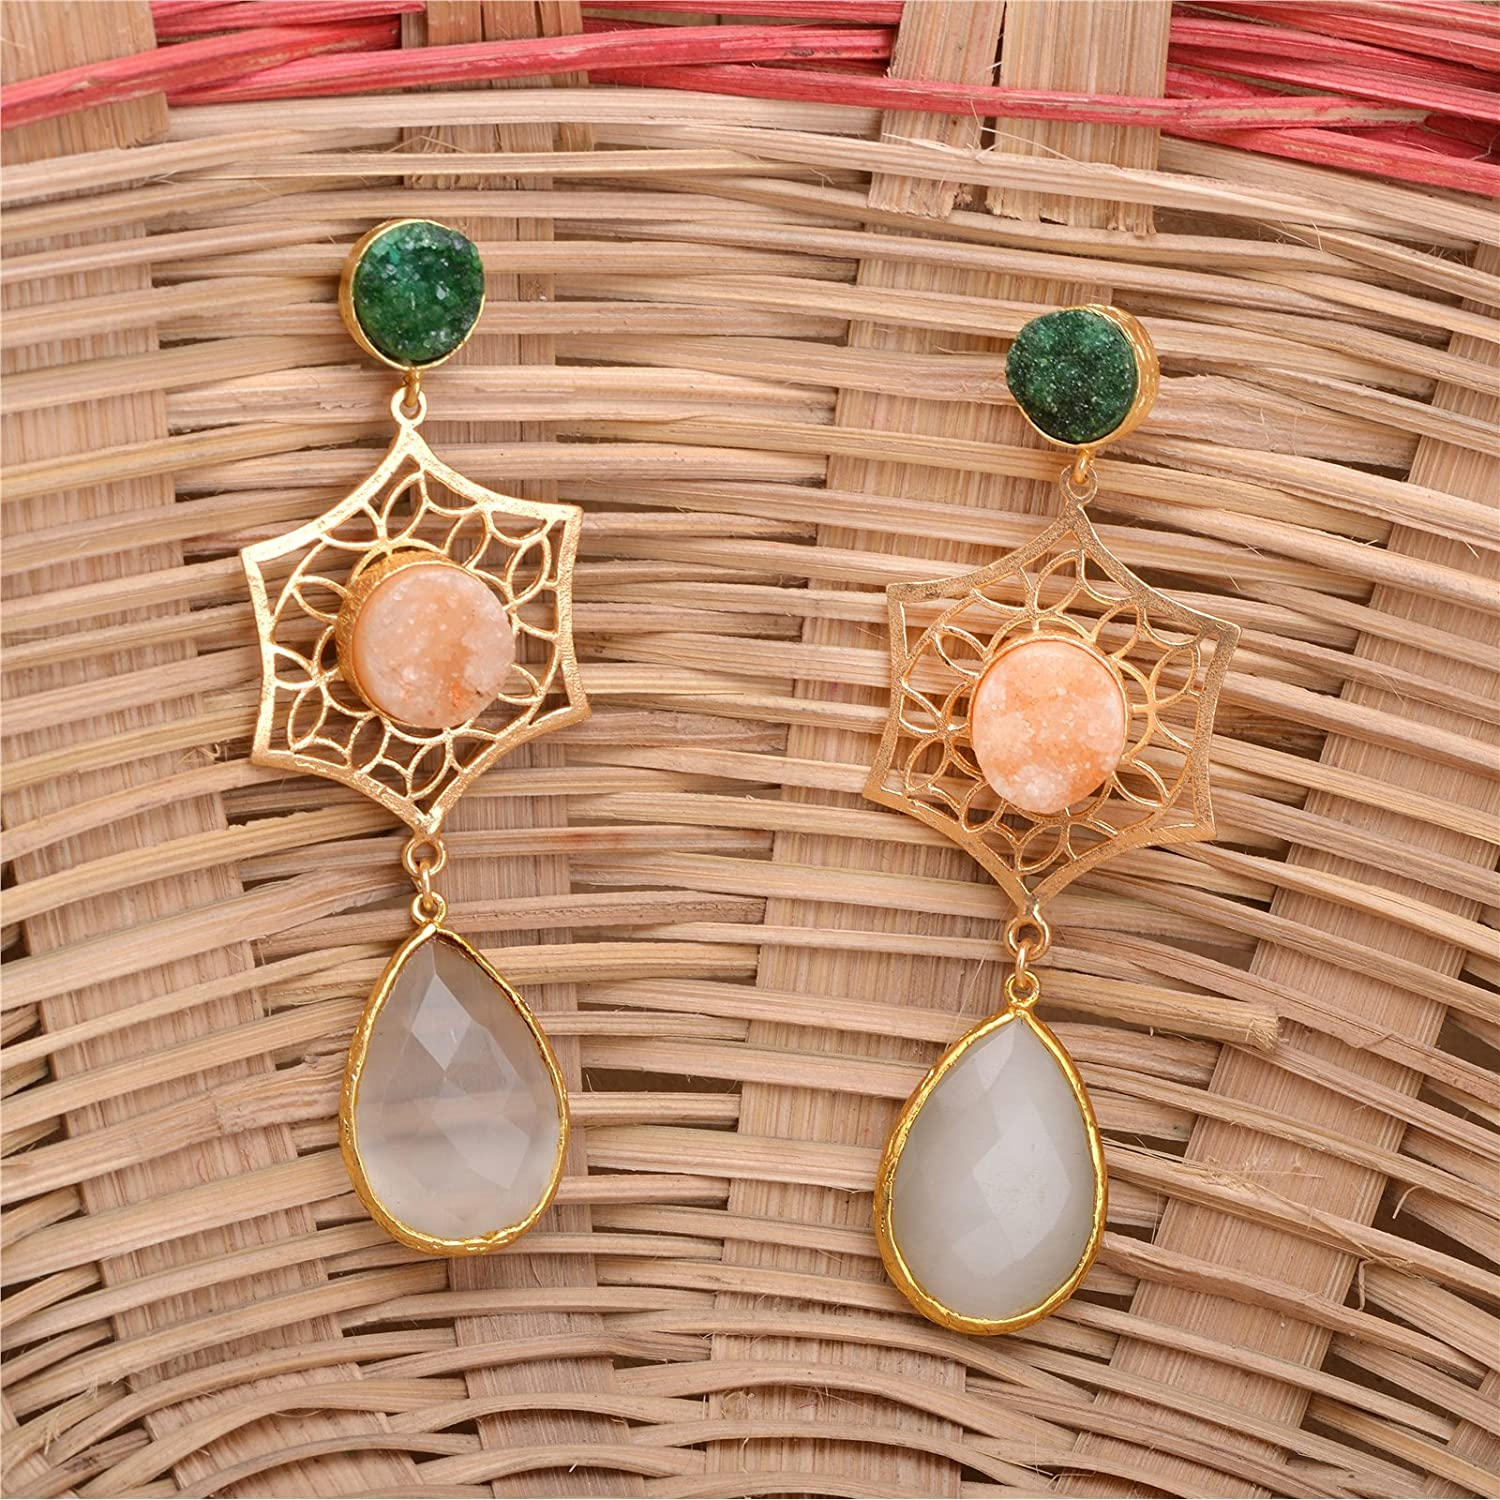 Zephyrr Earrings Gold Plated Druzy and Filigree Work with White Glass Beads For Women and Girls